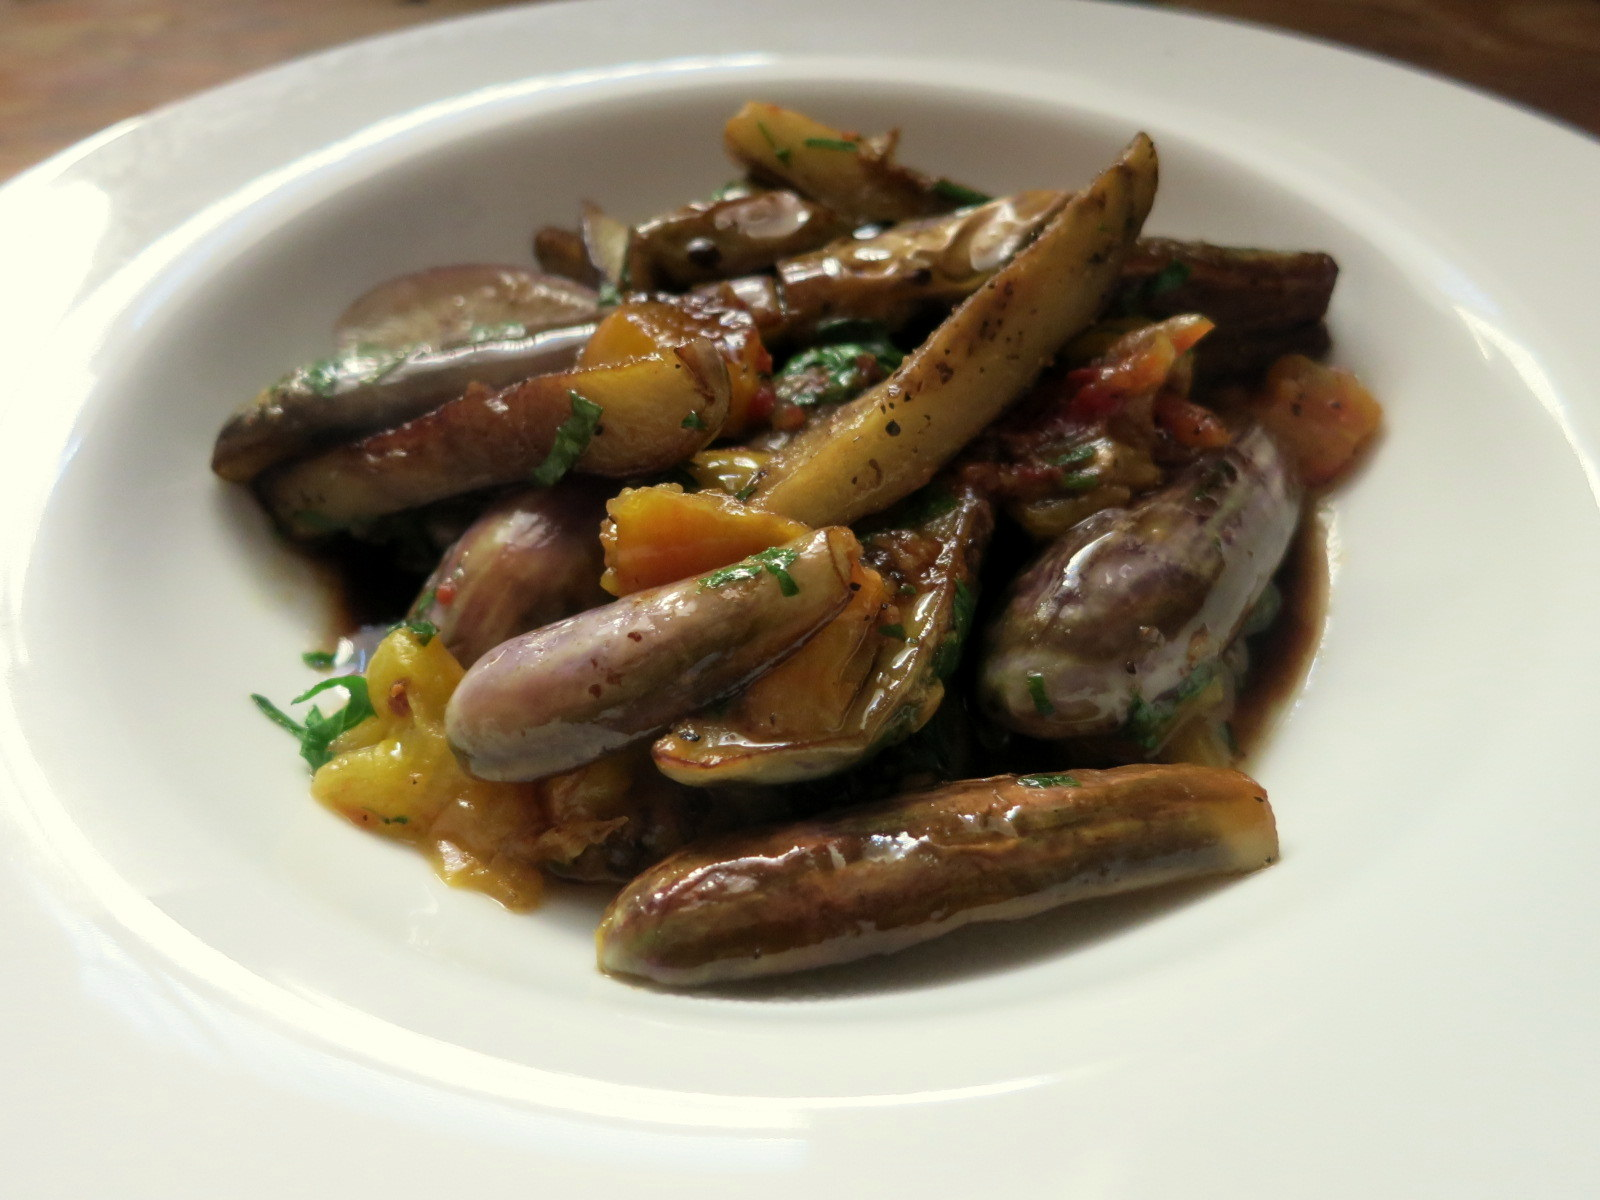 Caramelized fairy tale eggplant, heirloom tomatoes